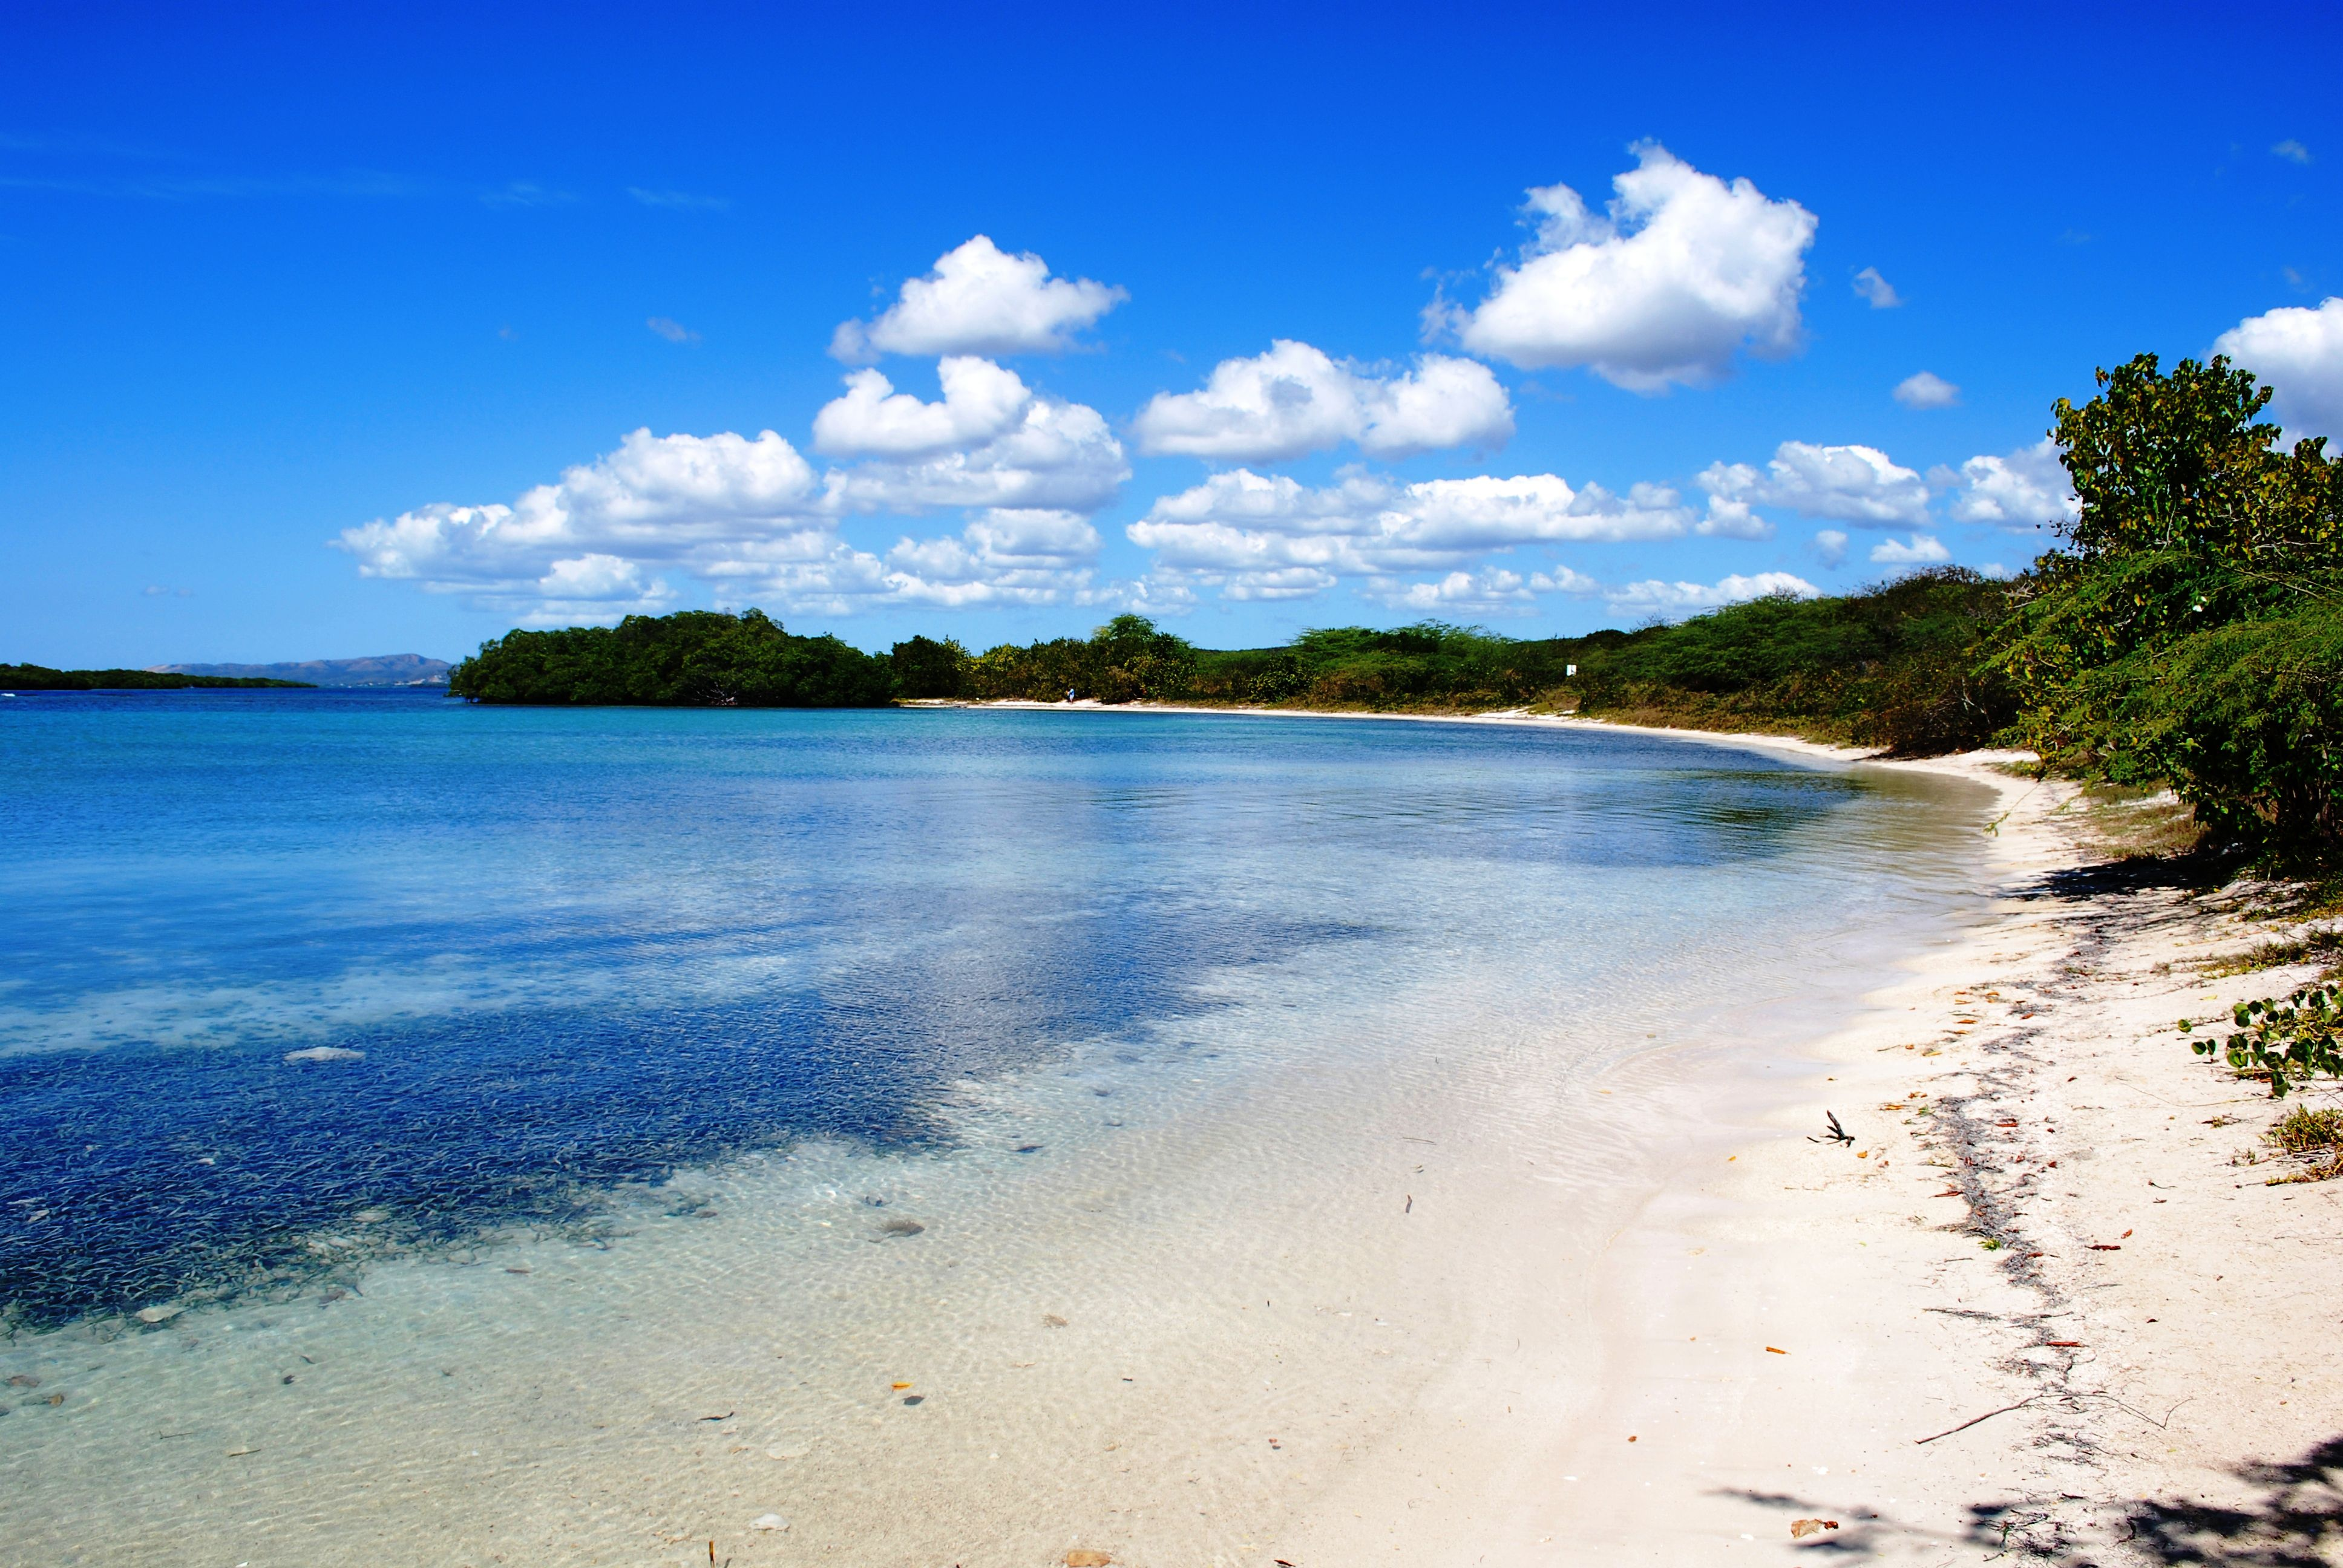 A blue sky reflected in clear waters at a beach in Guanica, PR